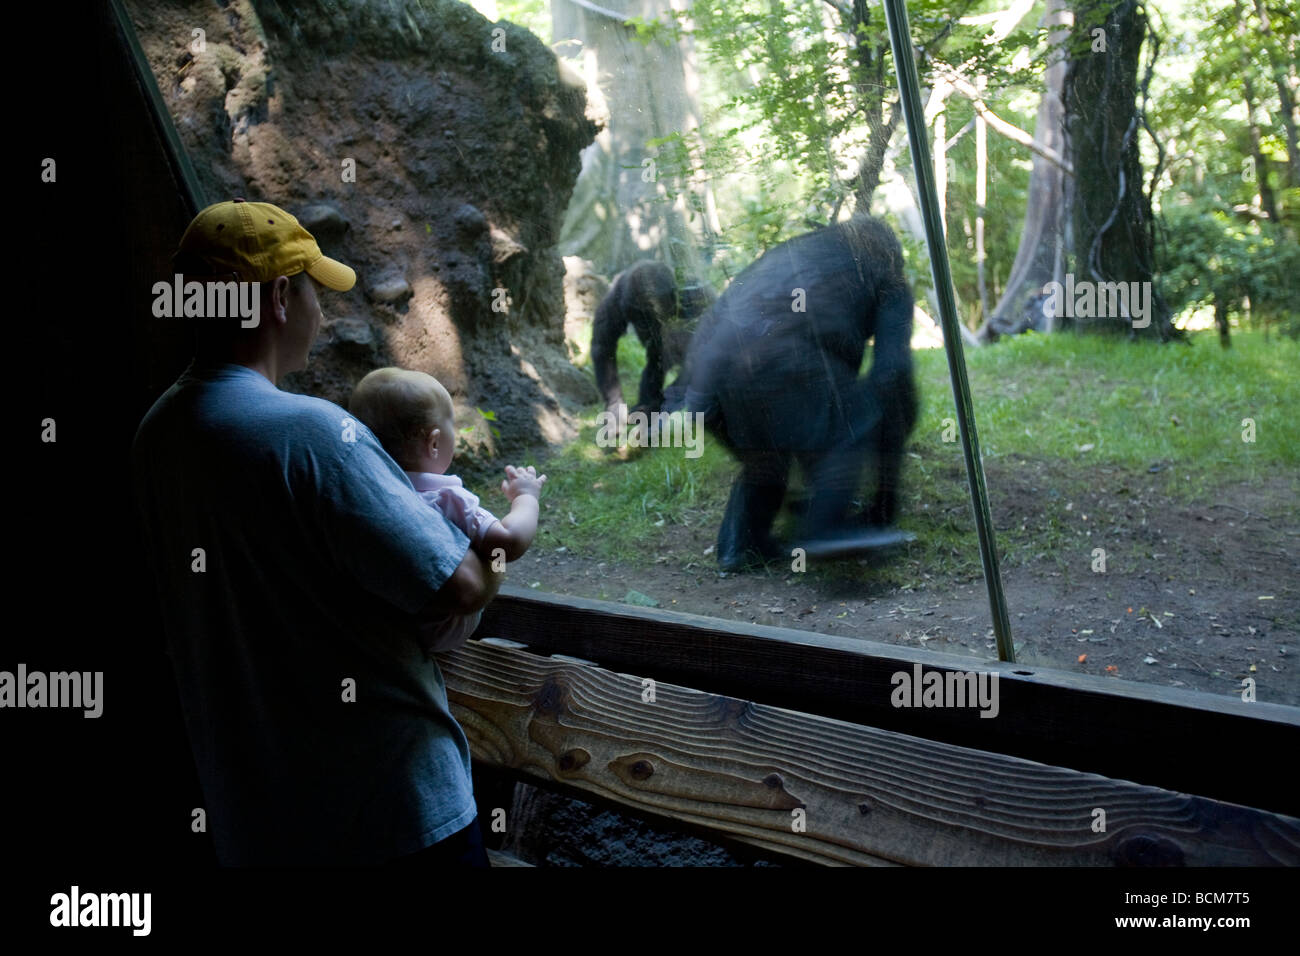 Congo Gorilla Forest Bronx Zoo The Bronx New York City Usa Stock